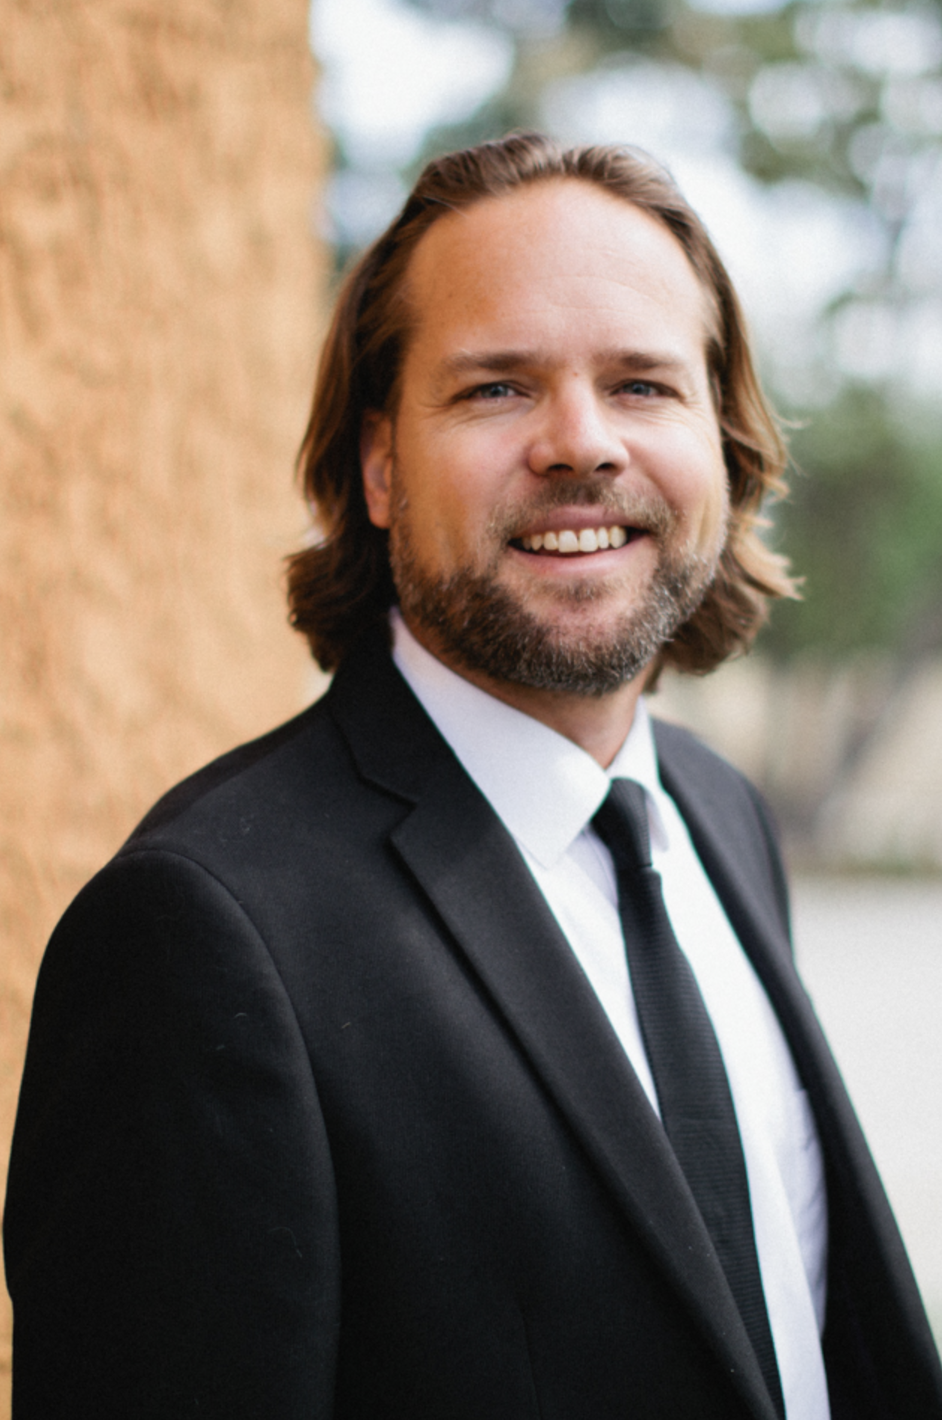 Dr. Jeff Mallinson - Jeff earned a D.Phil. from Oxford in theology and philosophy of the Reformation era.  After several years in higher ed, he now serves as Professor of Theology and Philosophy at Concordia University, Irvine